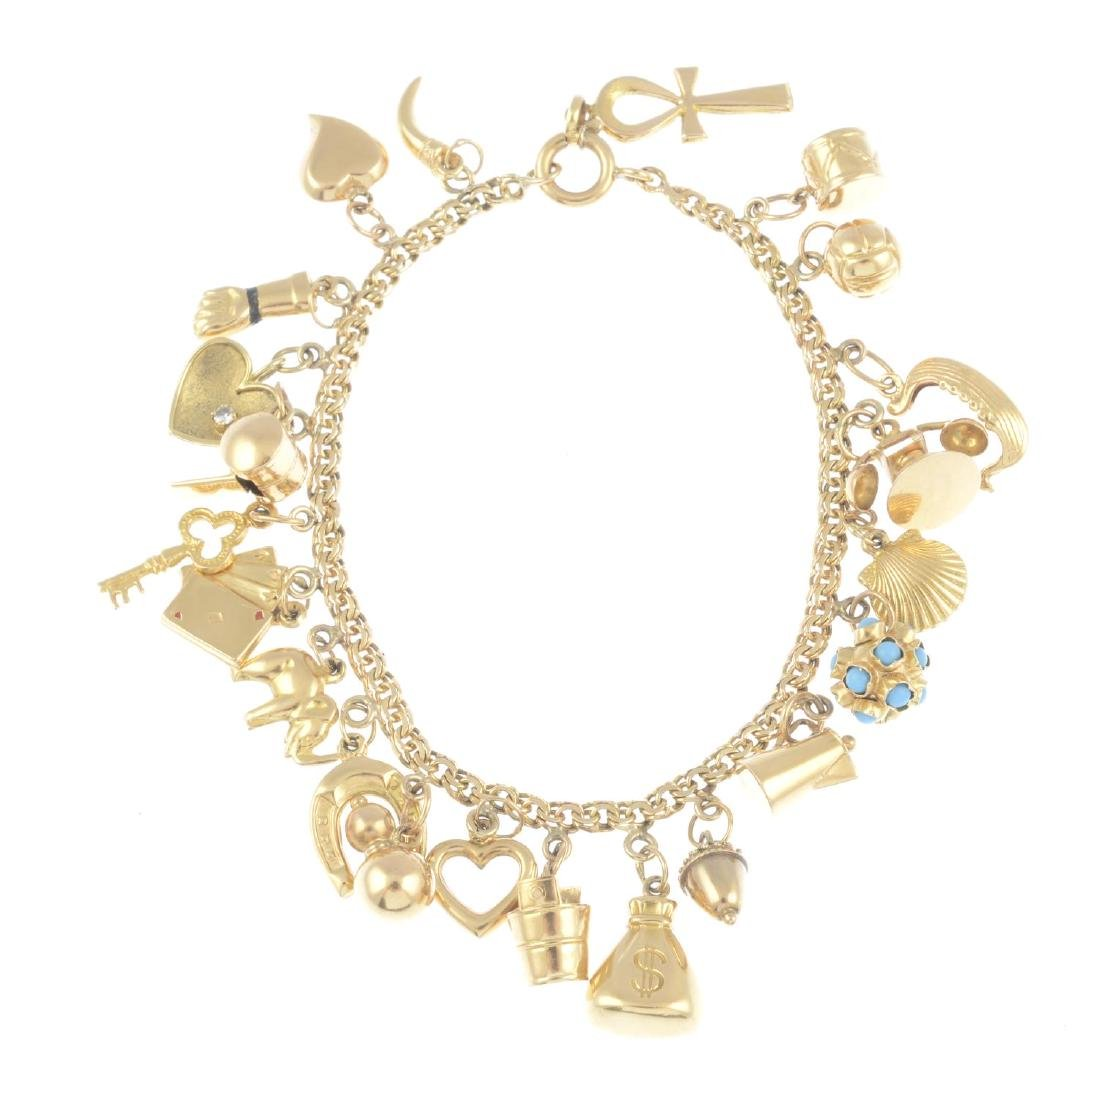 (209758) A charm bracelet. The fancy-link chain,